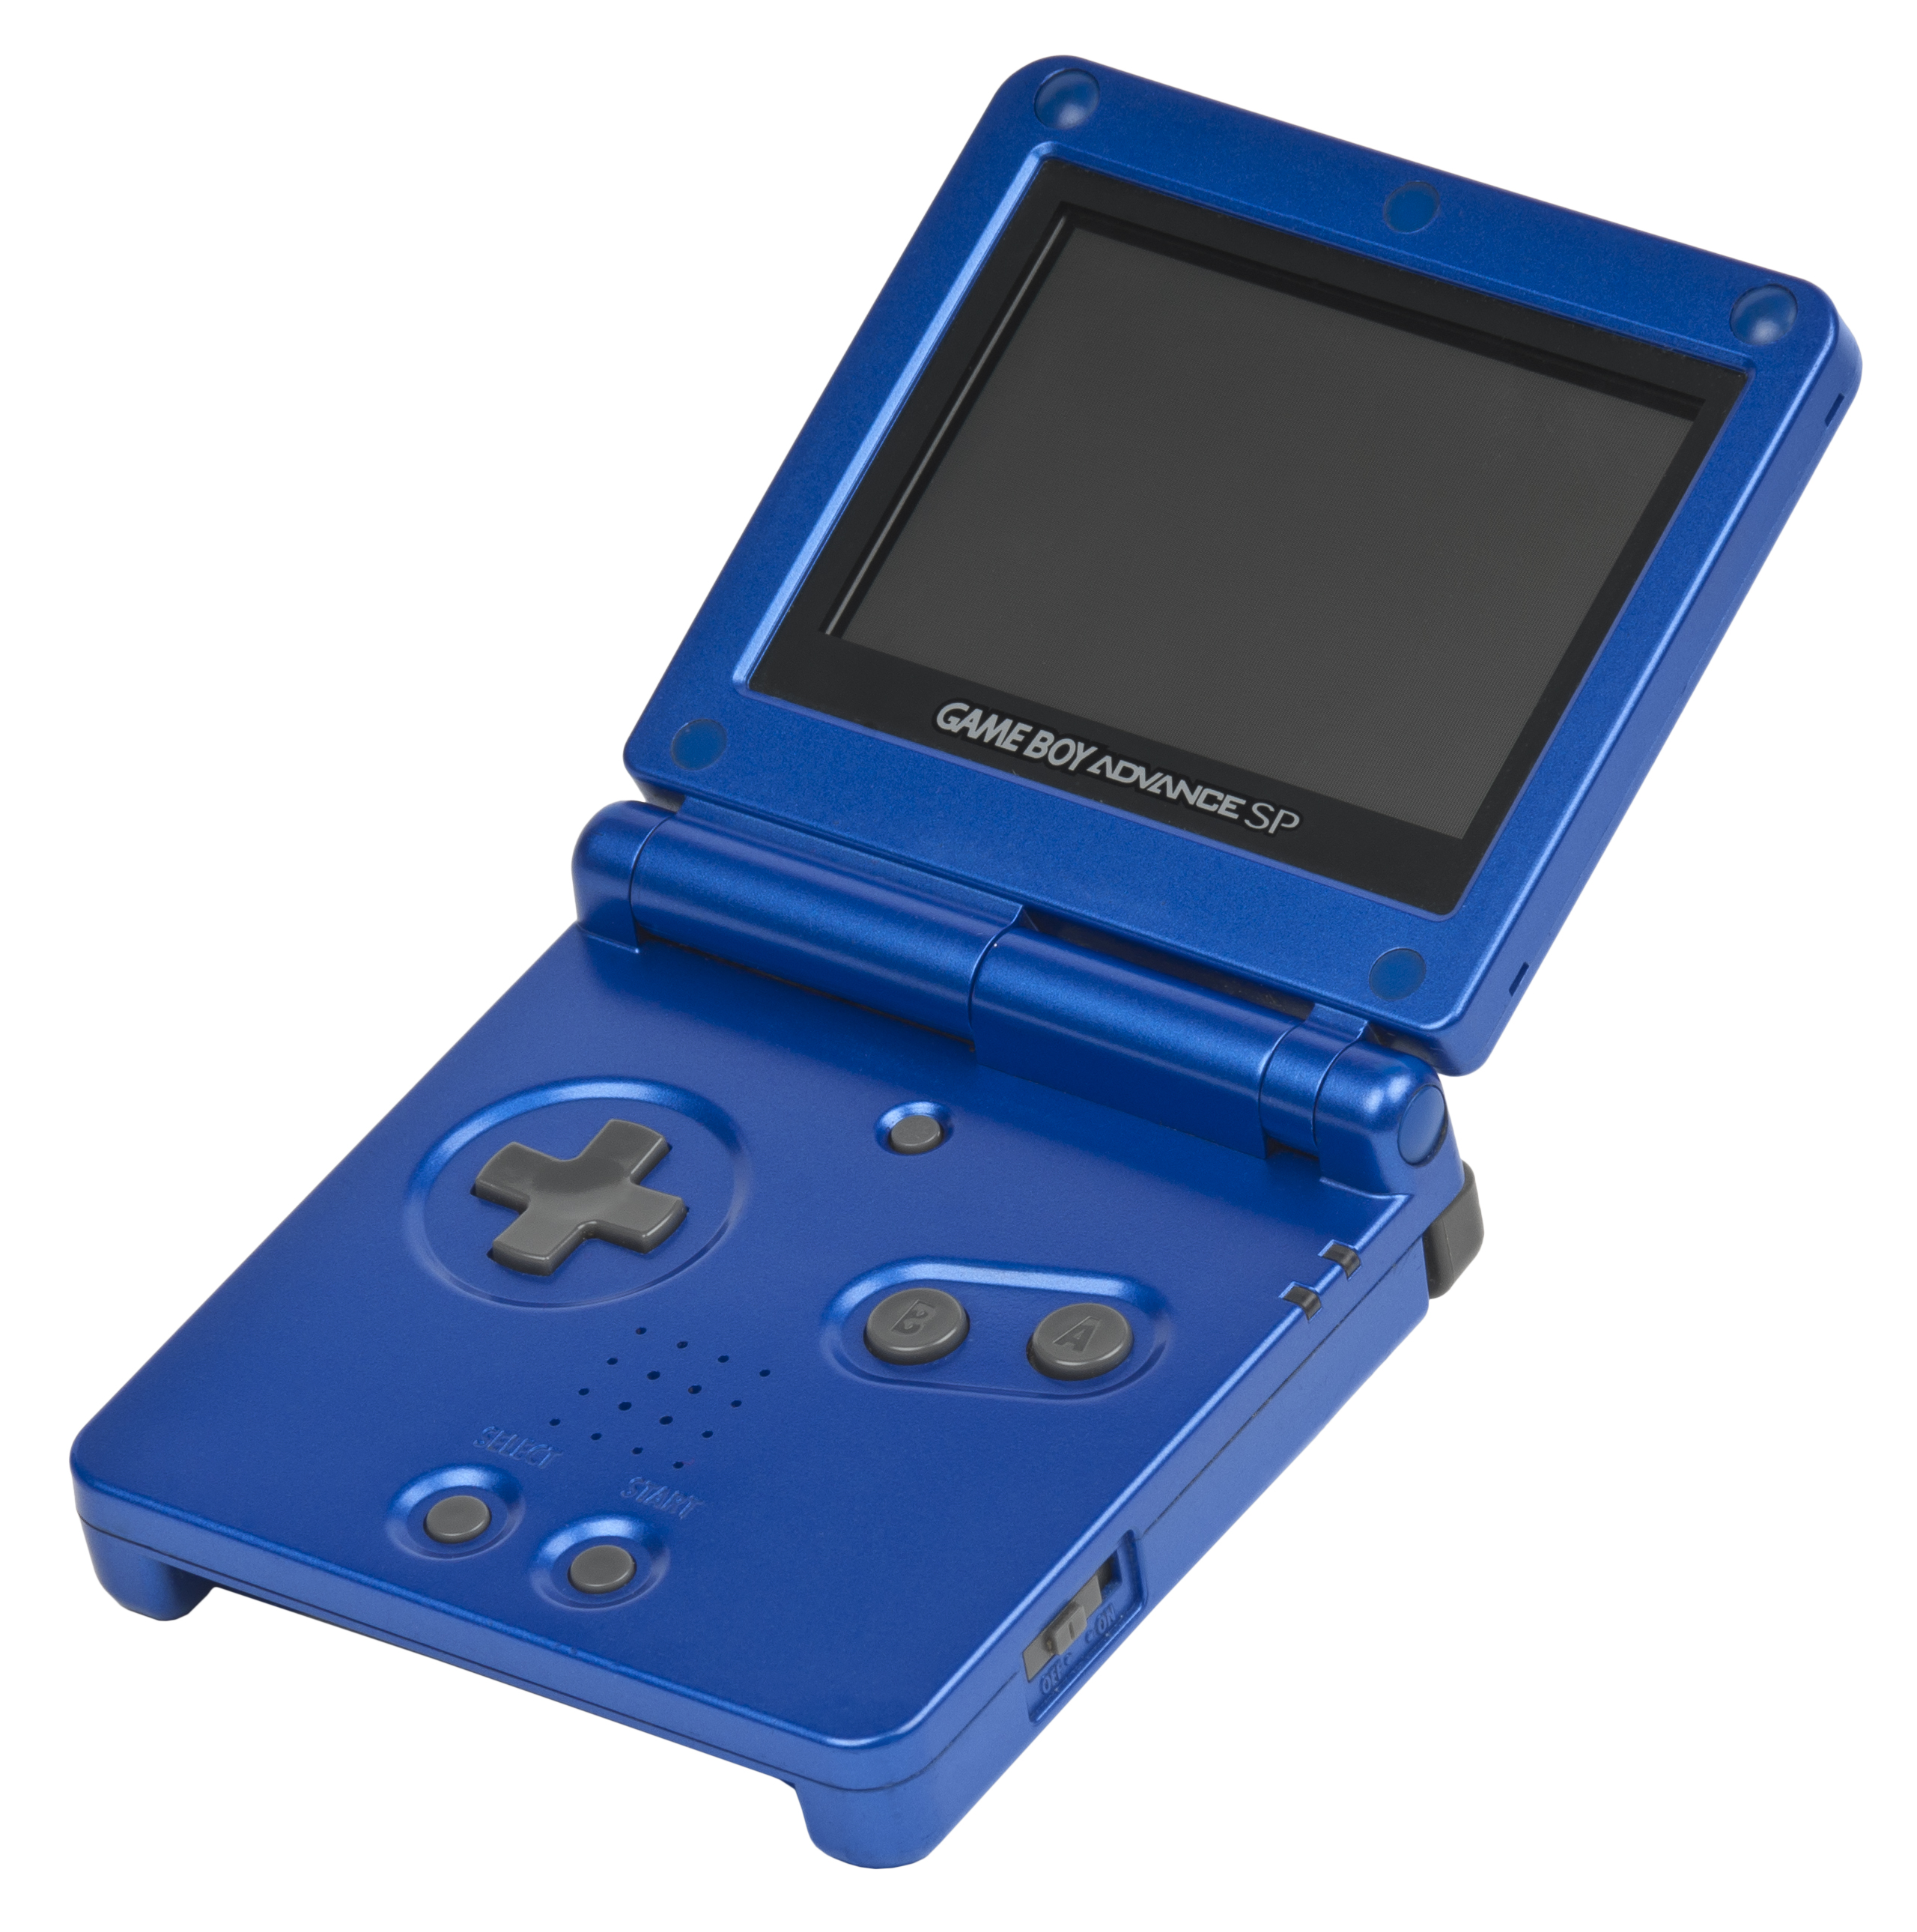 Game Boy Advance SP - Wikipedia